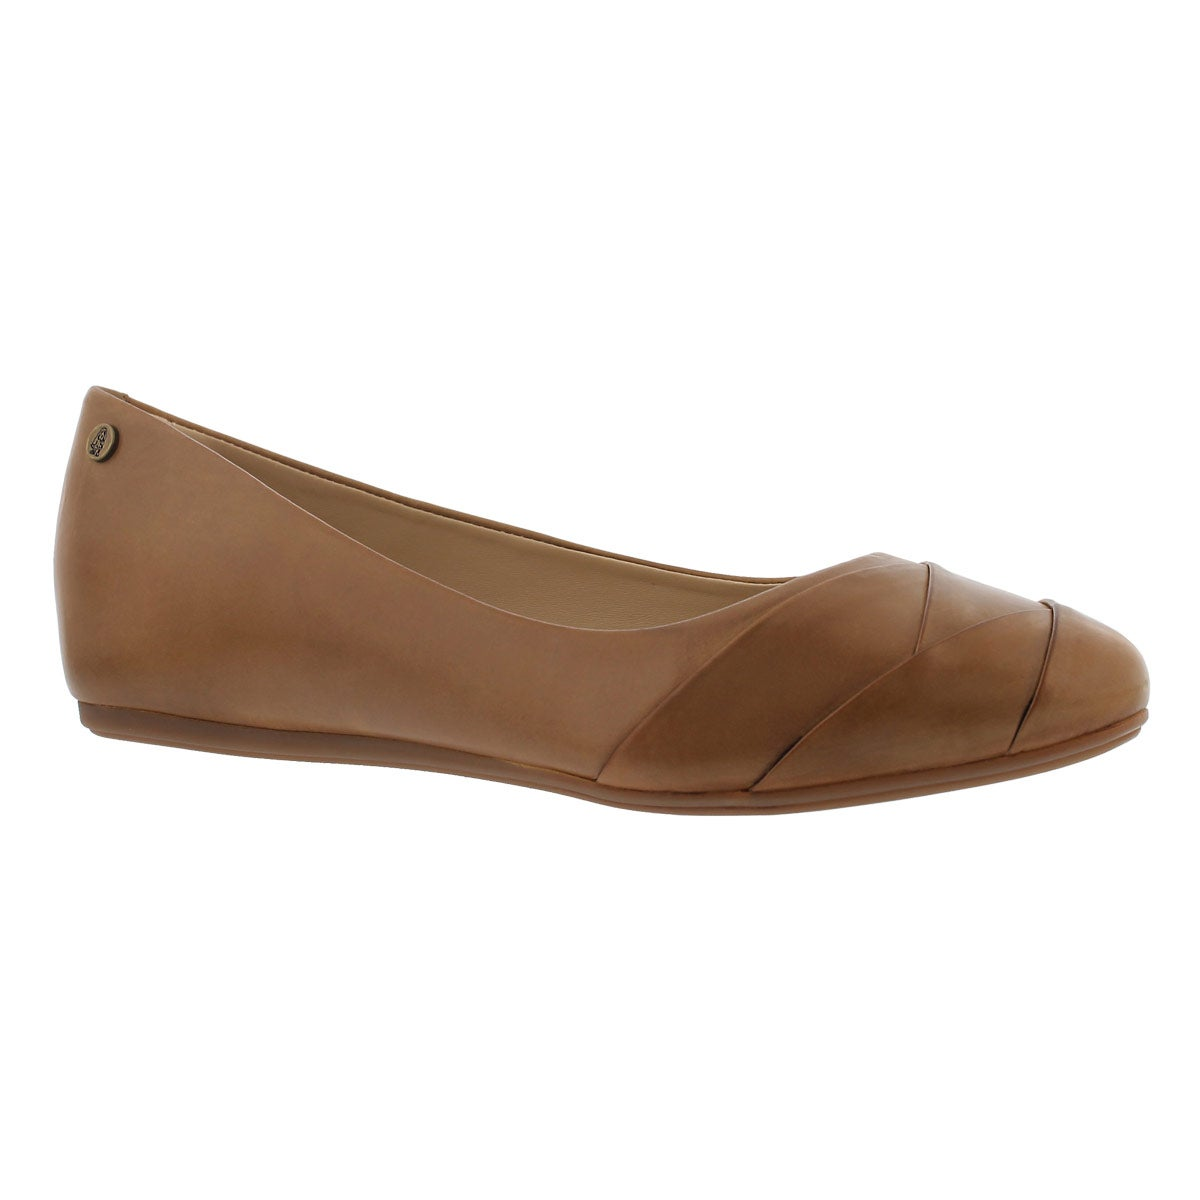 Women's HEIDI HEATHER cognac leather flats